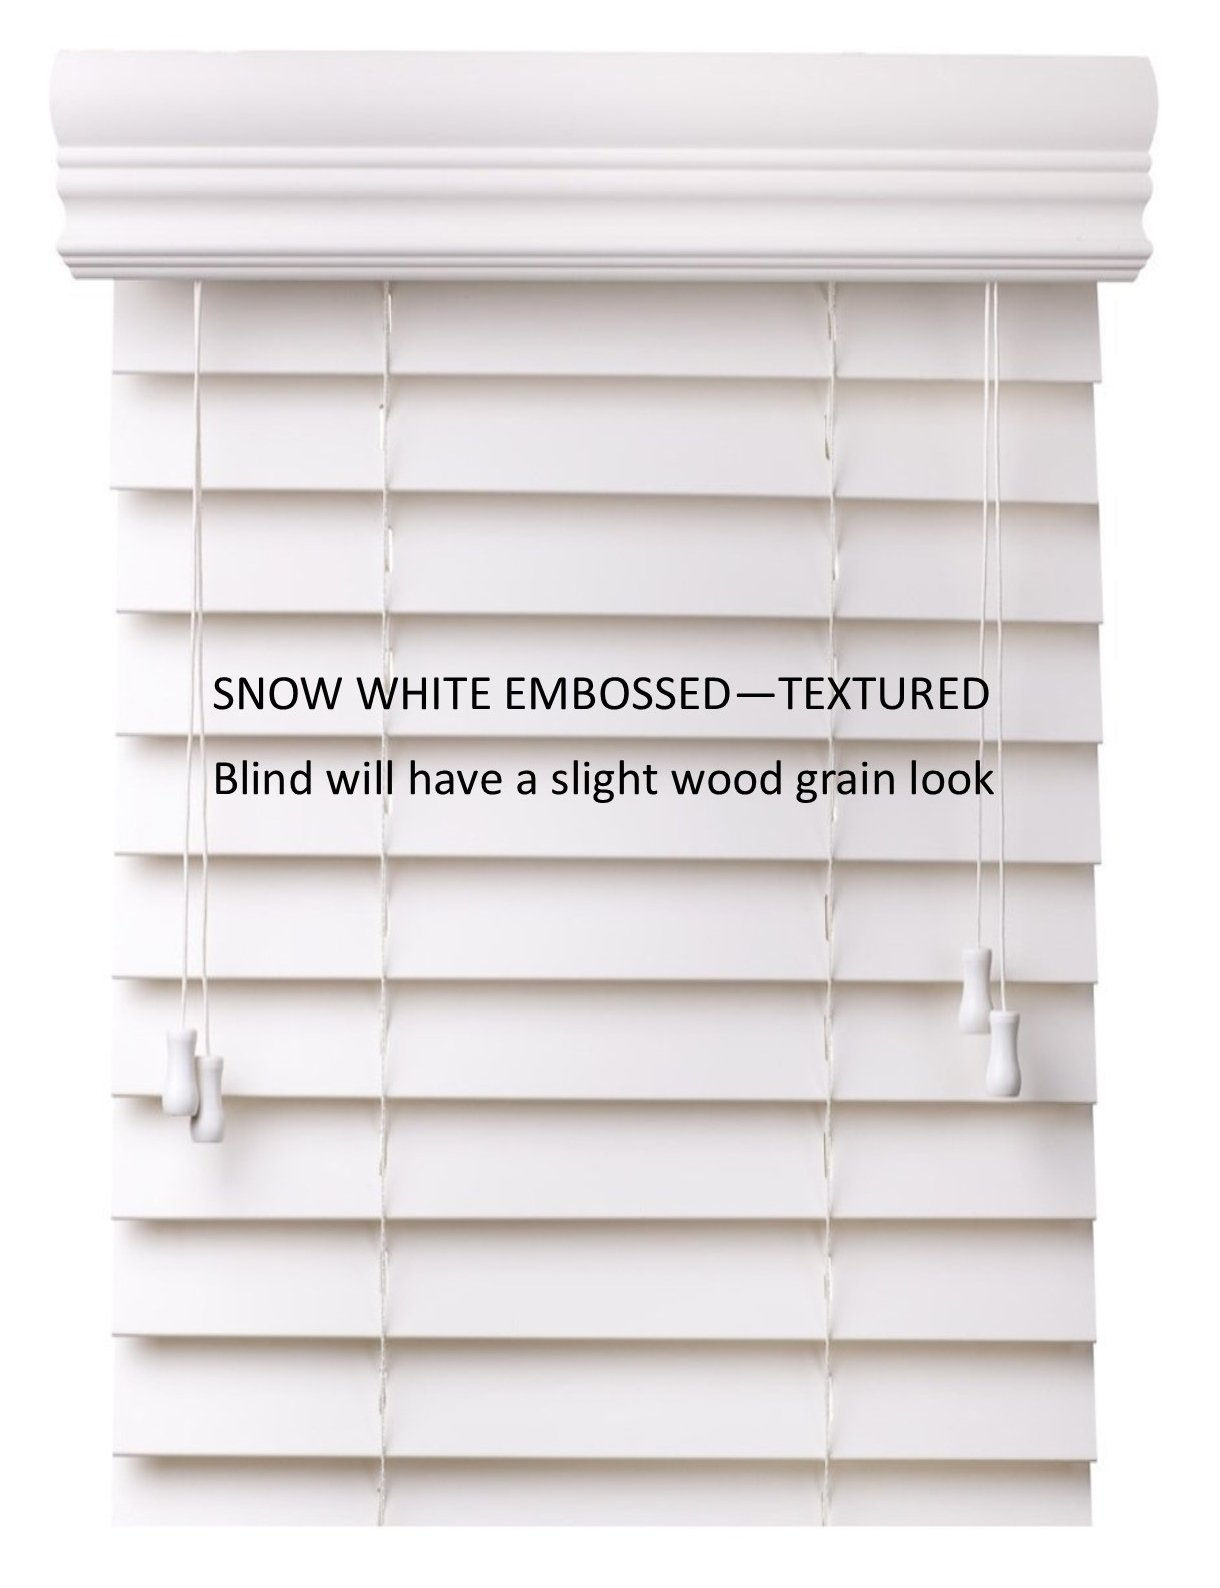 Spotblinds Custom Cut to Size 2'' Premium Faux Wood Blinds From 24'' Wide to 60'' Long Color Snow White Embossed (24'' W x 36'' L)